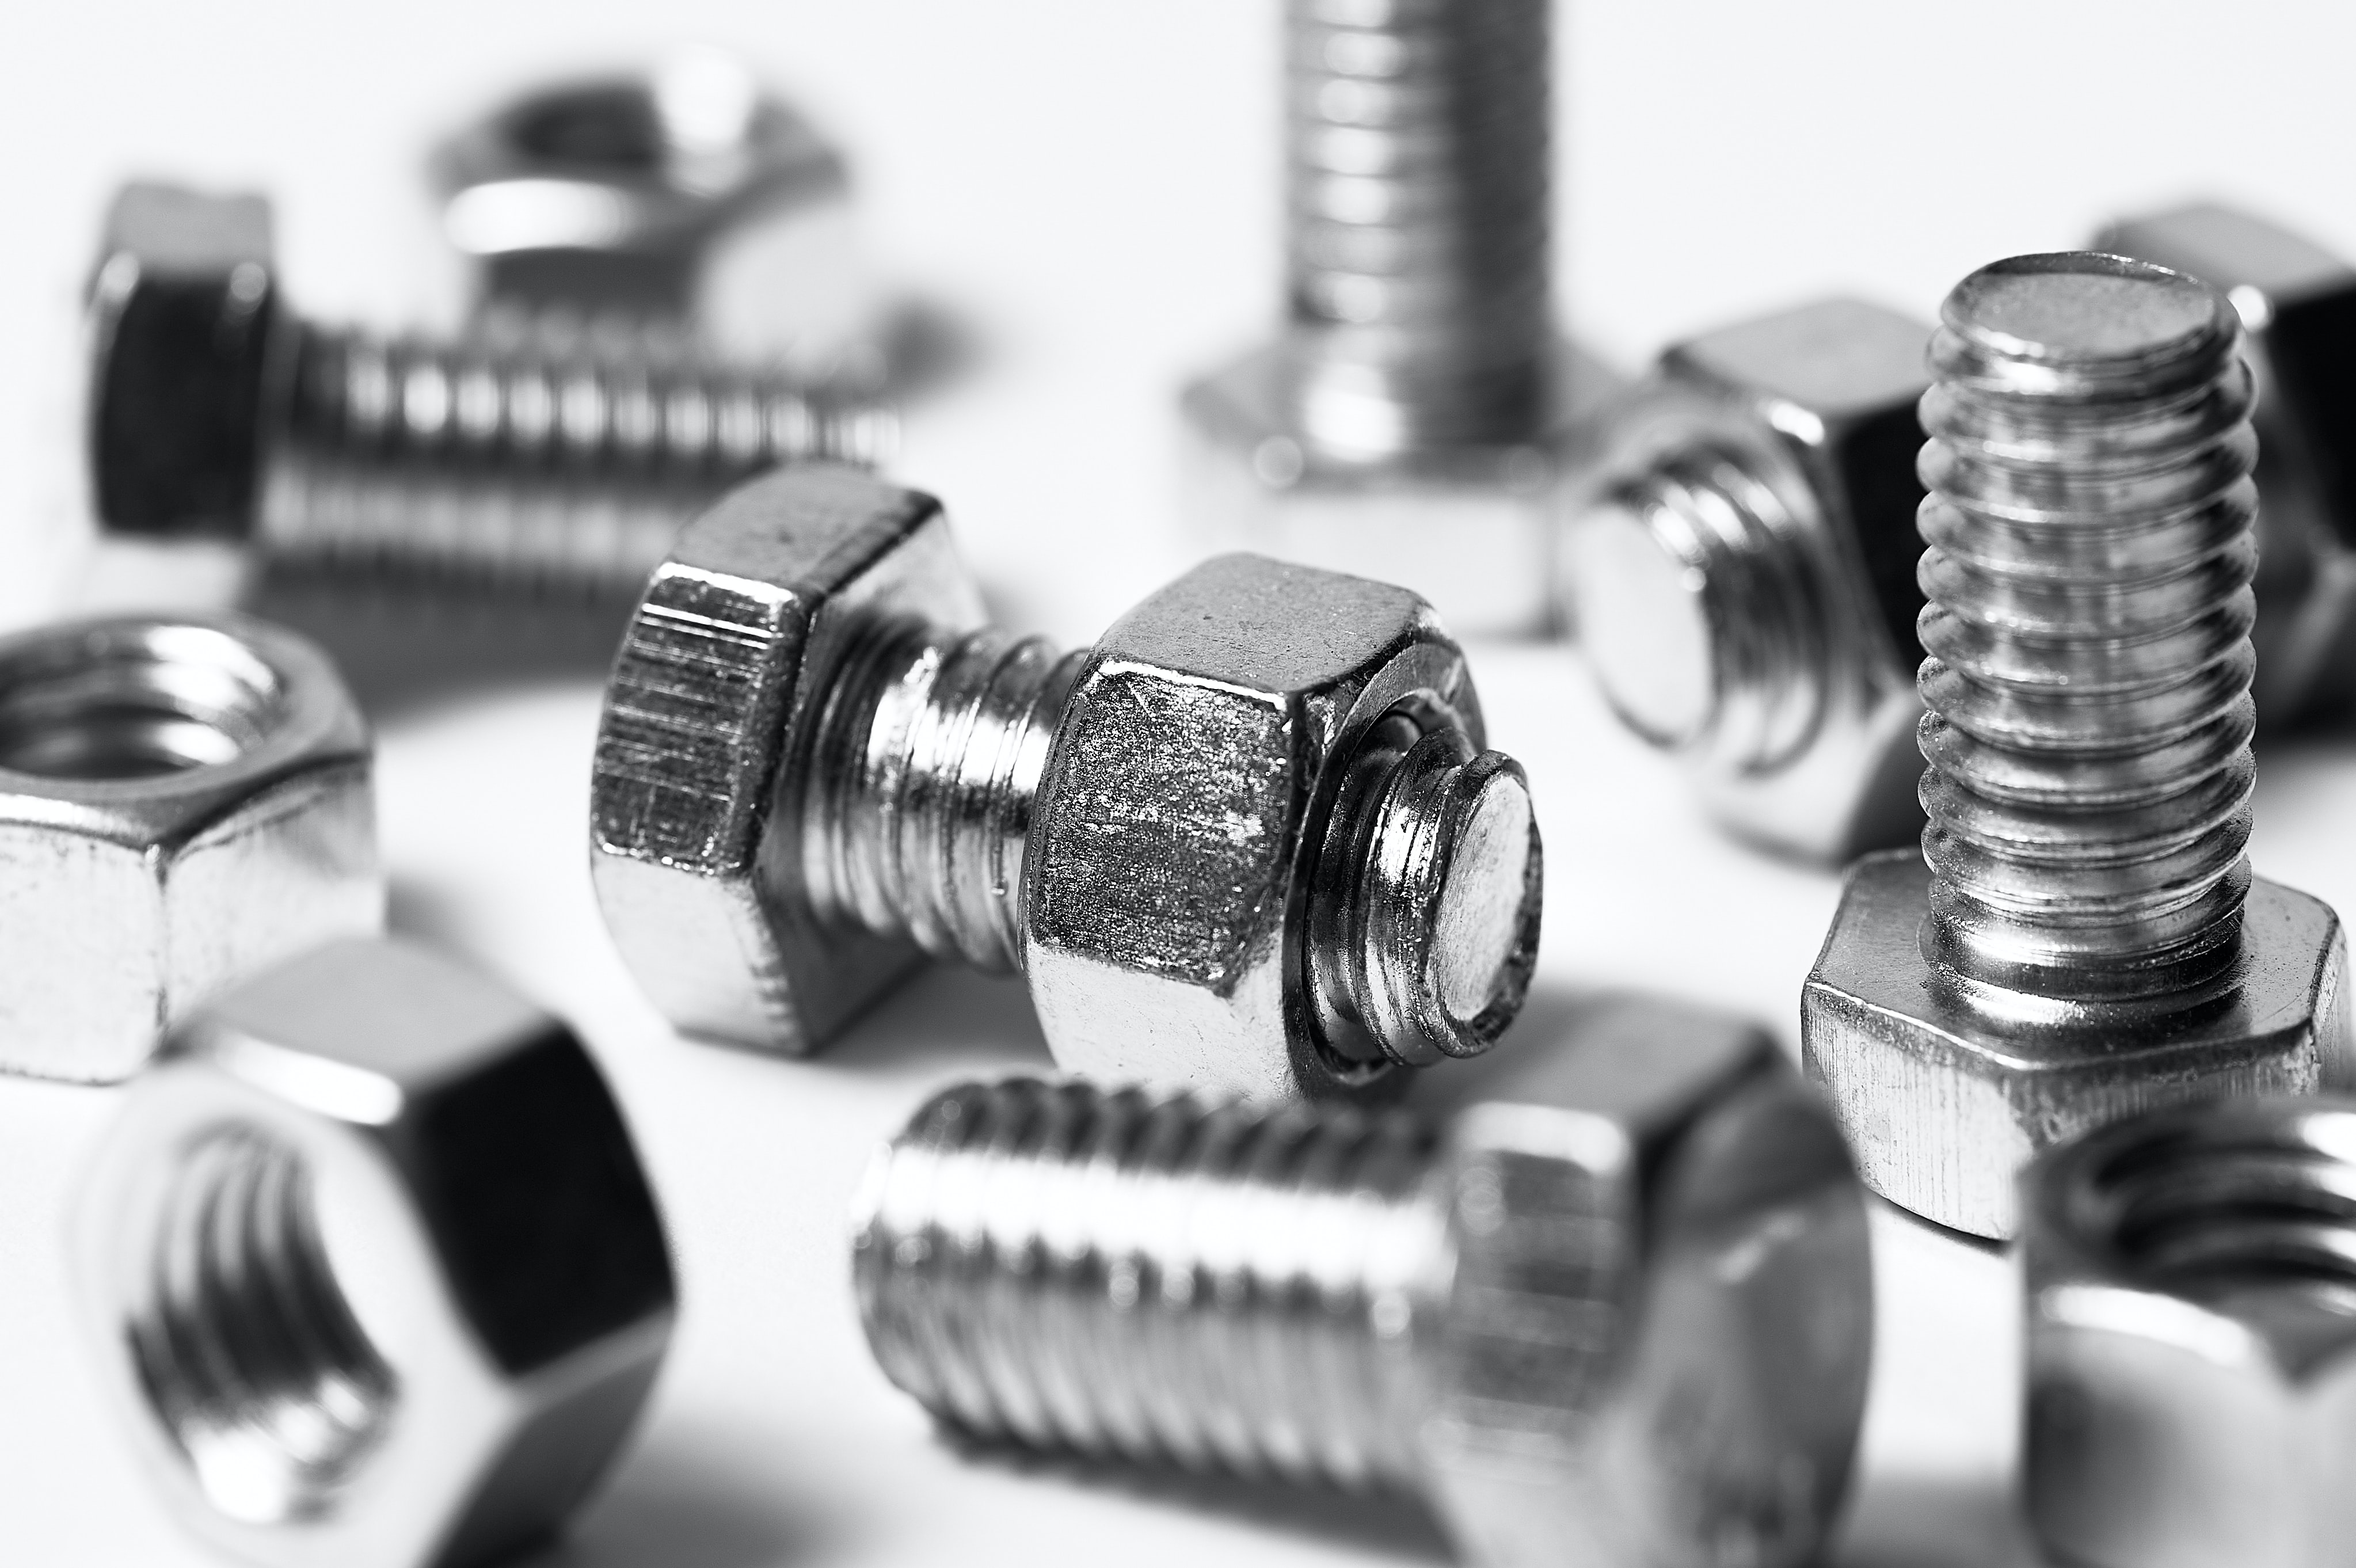 silver nuts and bolts on a table; pre-employment assessment